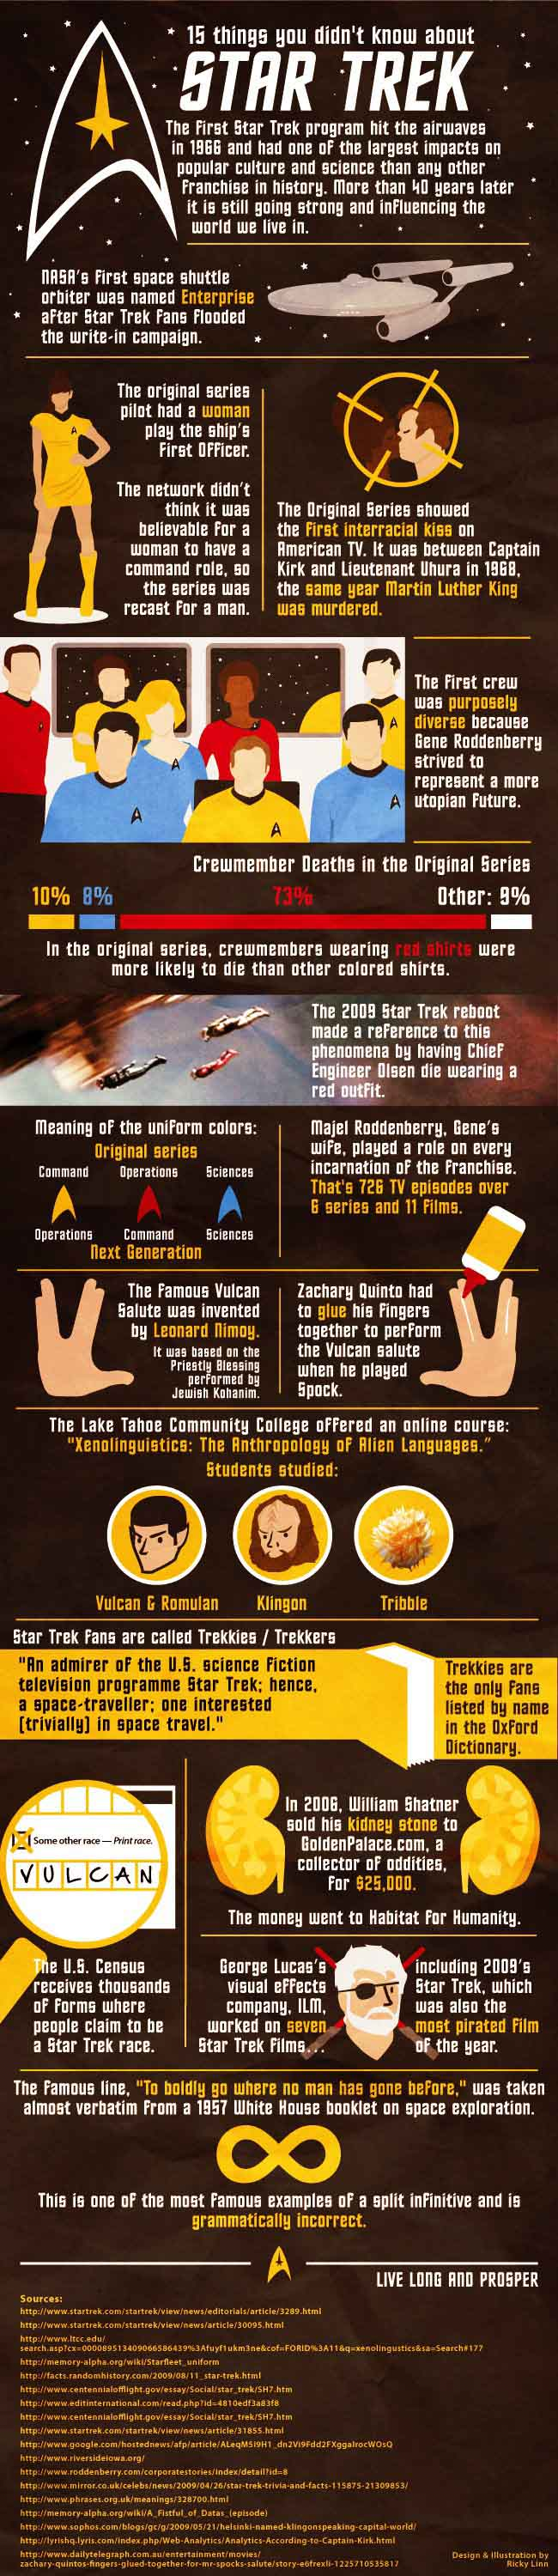 15 things you didnt know about Star Trek